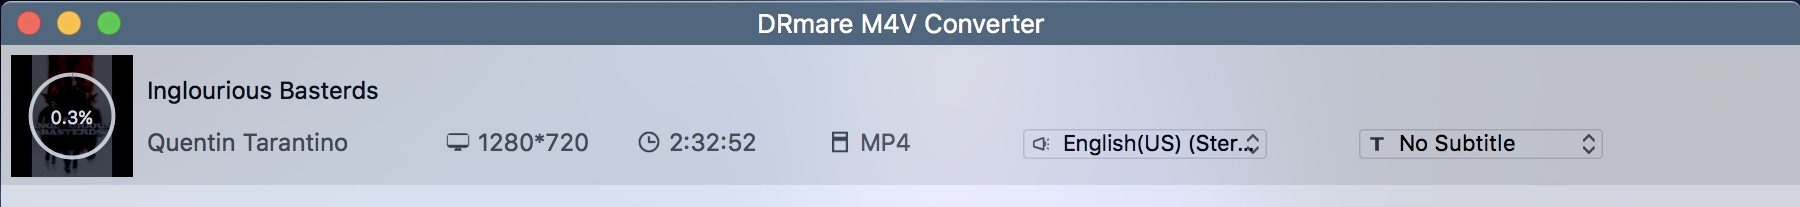 drmare m4v converter - converting file mp4